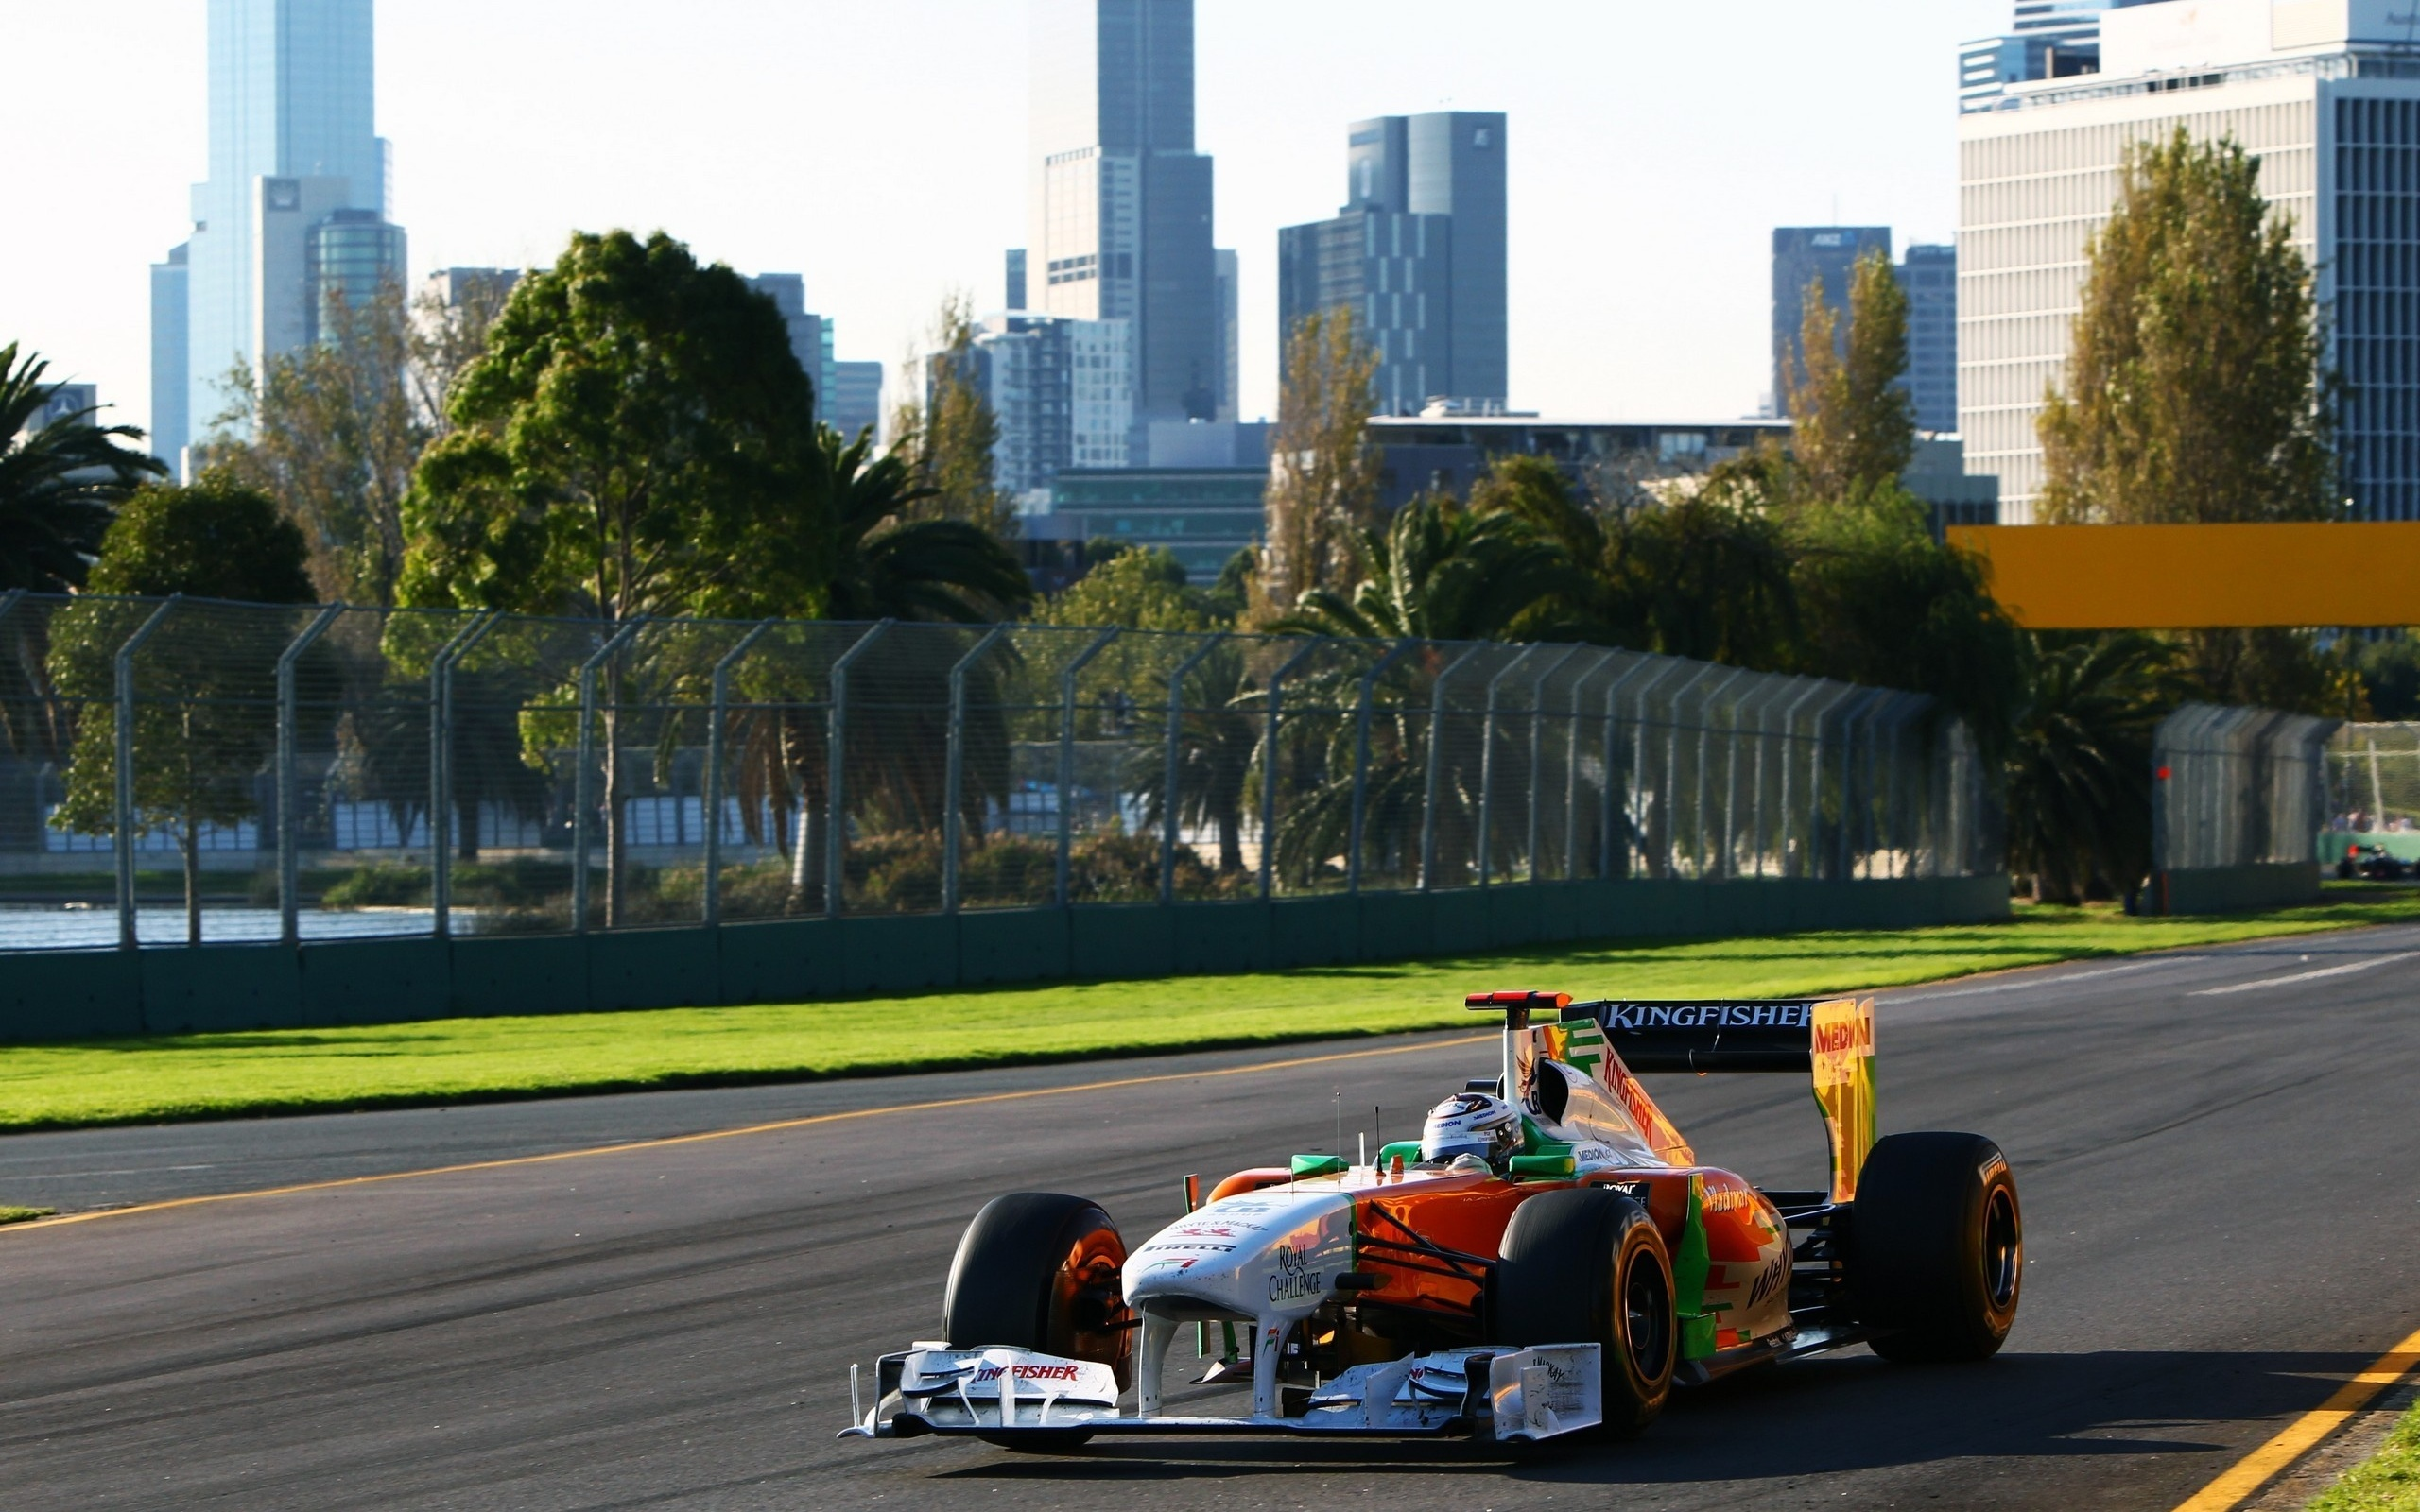 force india, F1, 2011, australiangp, andrian sutil, гран-при, австралия